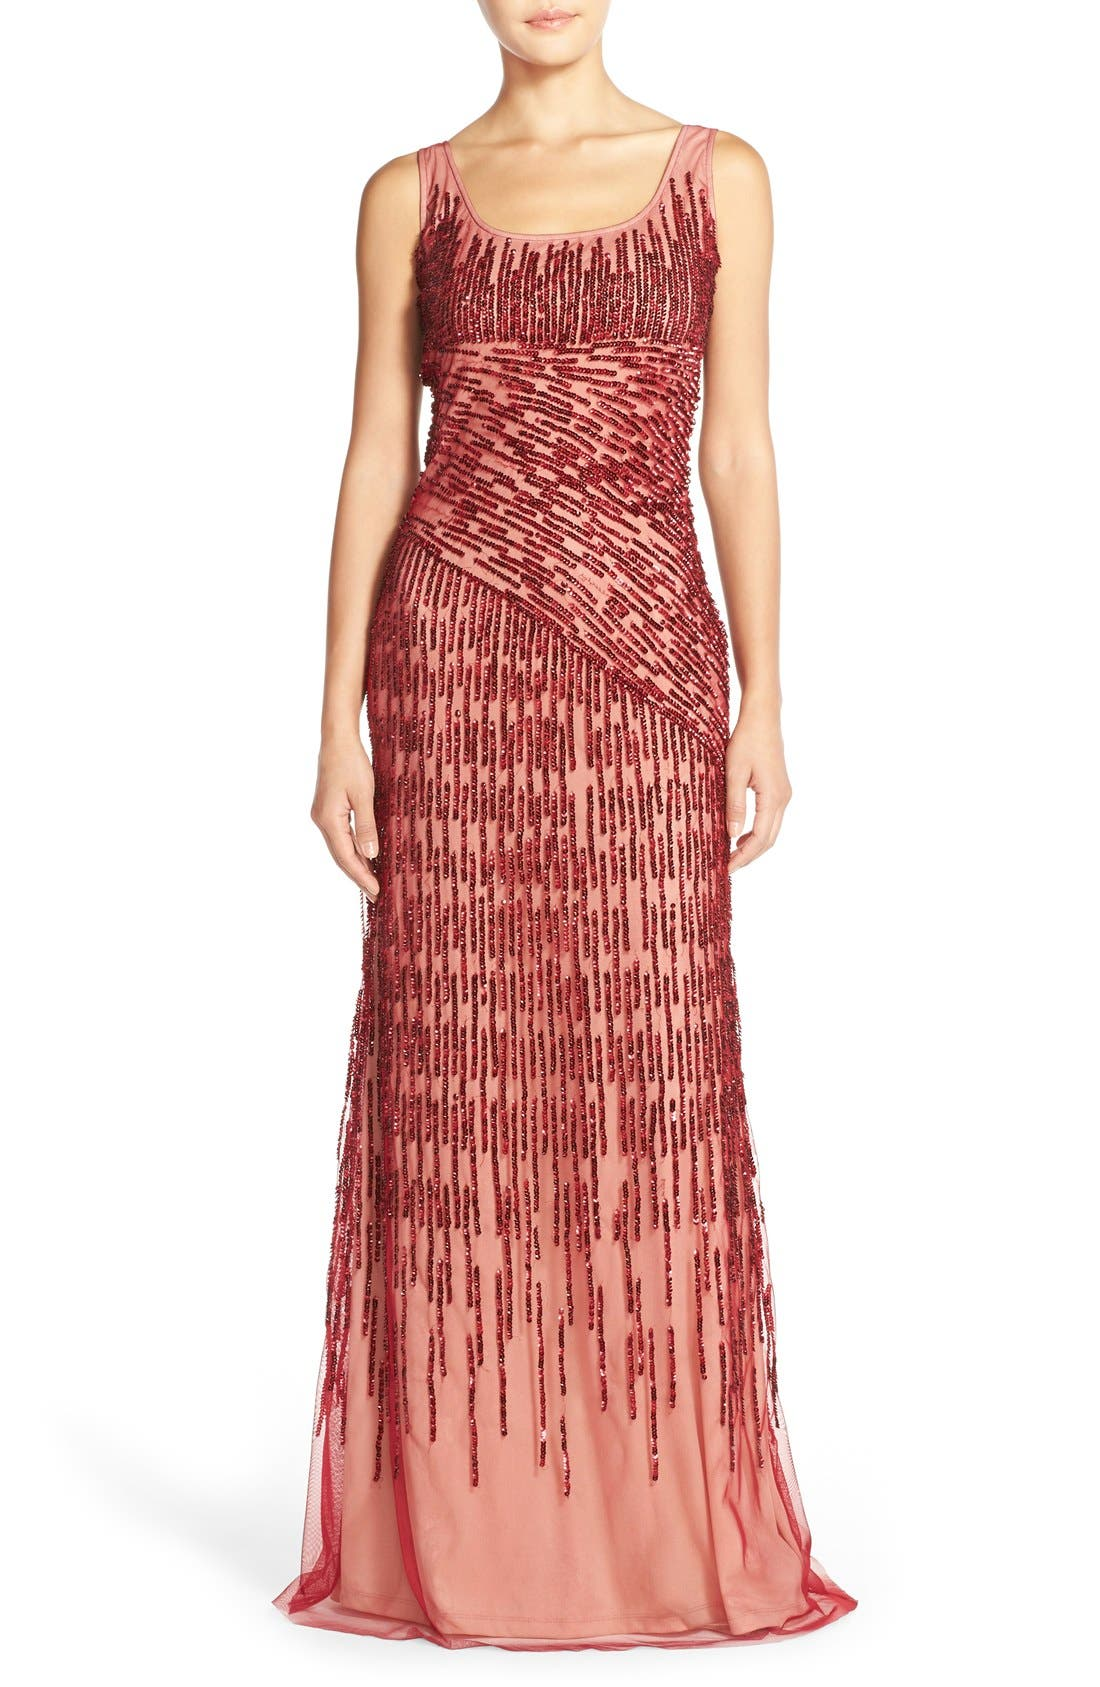 Alternate Image 1 Selected - Adrianna PapellSequin Mesh Gown